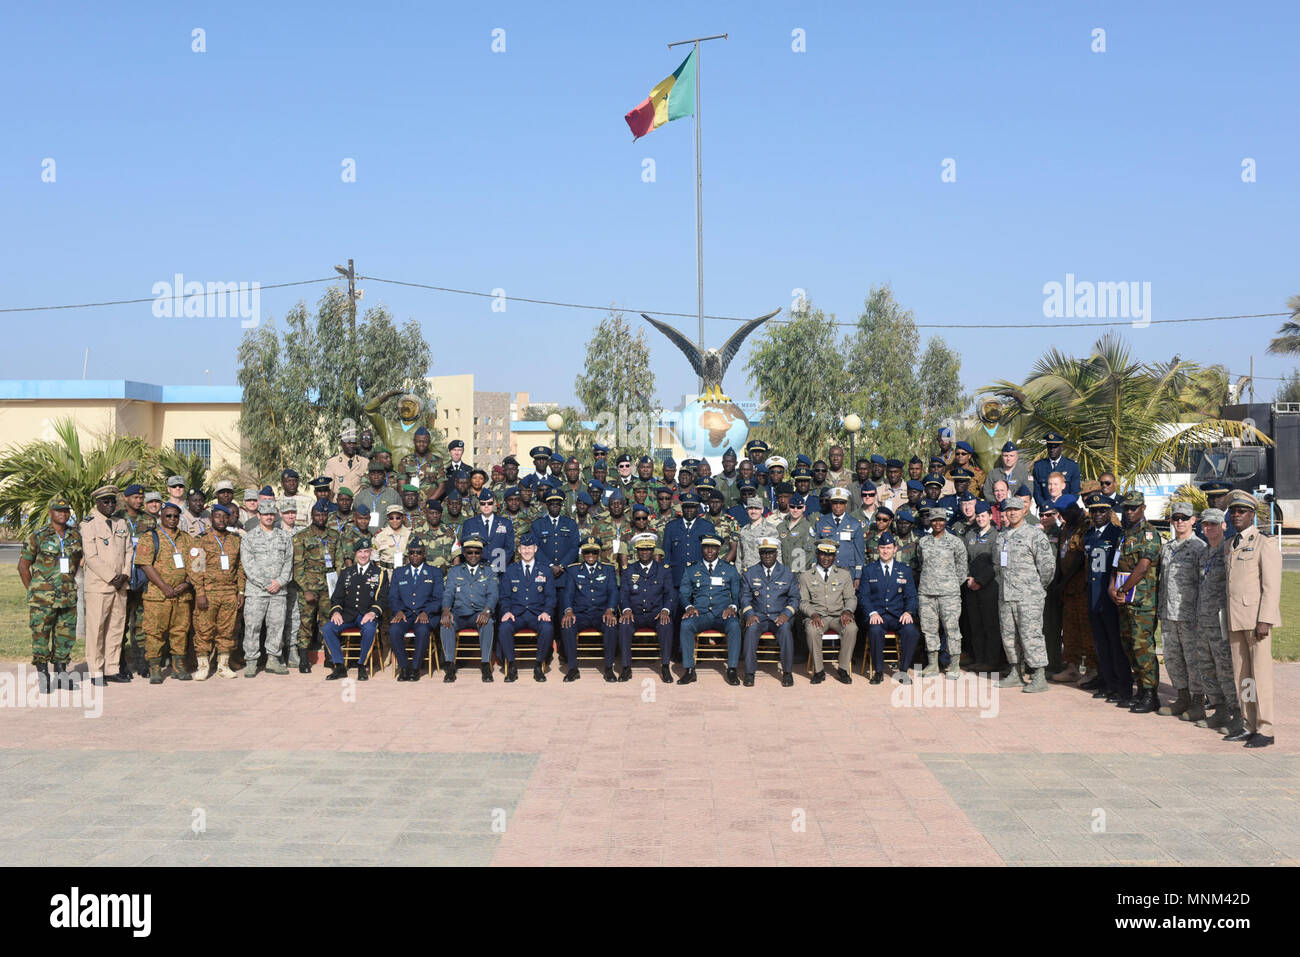 Participants of African Partnership Flight Senegal pose for a photo after the opening ceremony of APF at Captain Andalla Cissé Air Base, Senegal, March 19, 2018. Ten nations are participating in this event, which will focus on casualty evacuation, aeromedical evacuation, as well as air and ground safety. - Stock Image